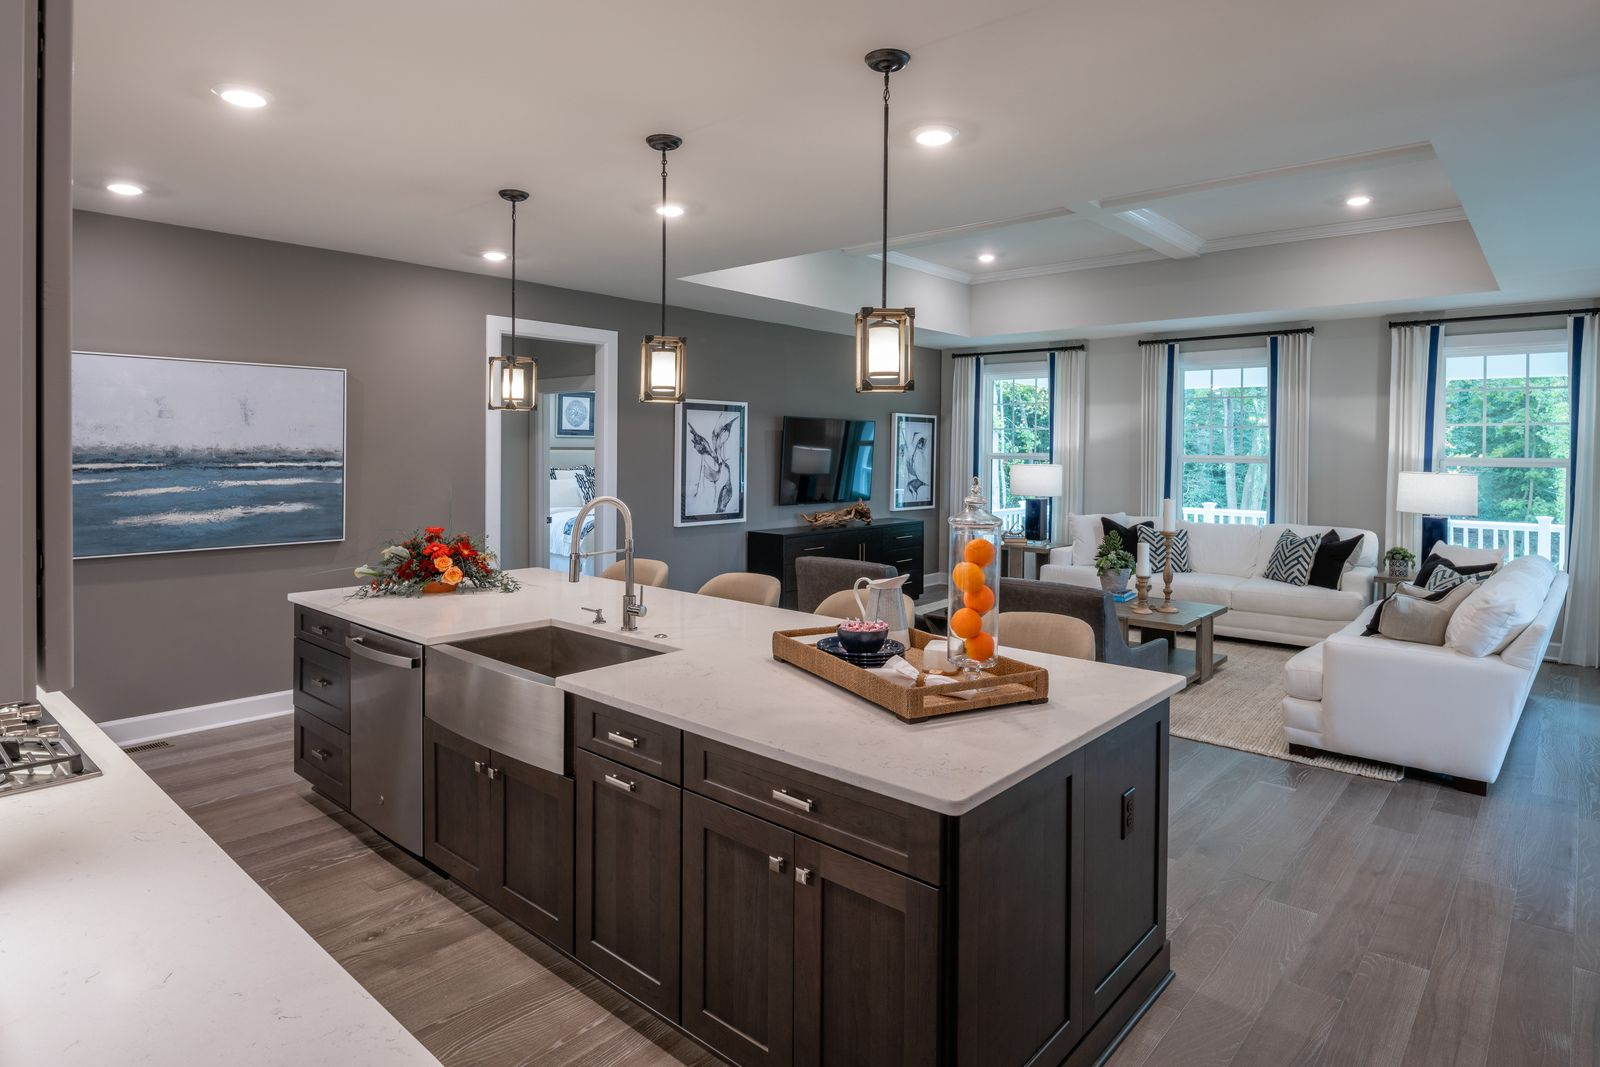 Living Area featured in the Fairhaven By NVHomes in Sussex, DE